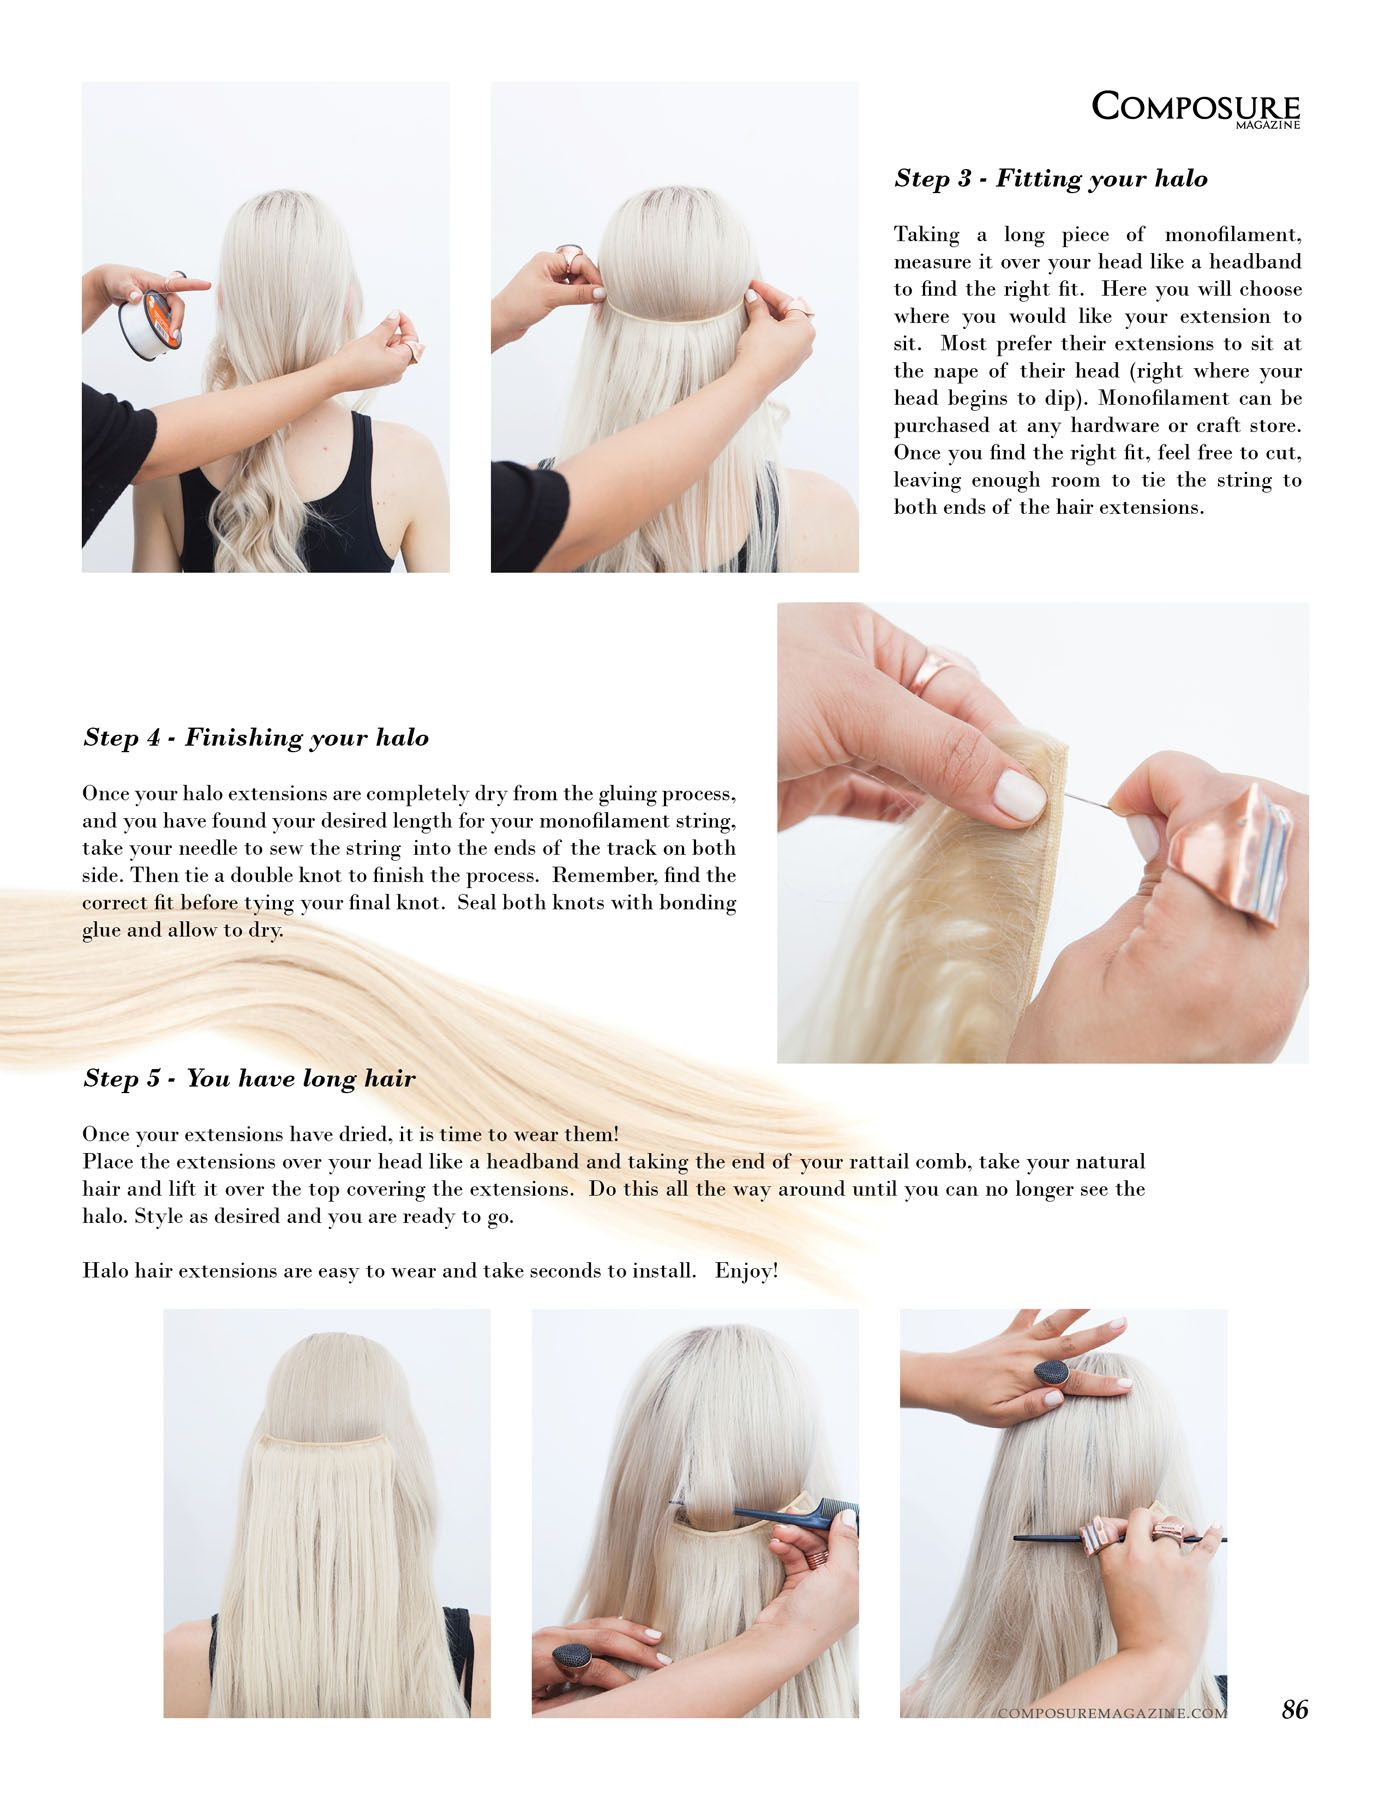 Beauty Halo Hair Extensions Hair Extensions Best Halo Hair Extensions Diy Hair Extensions